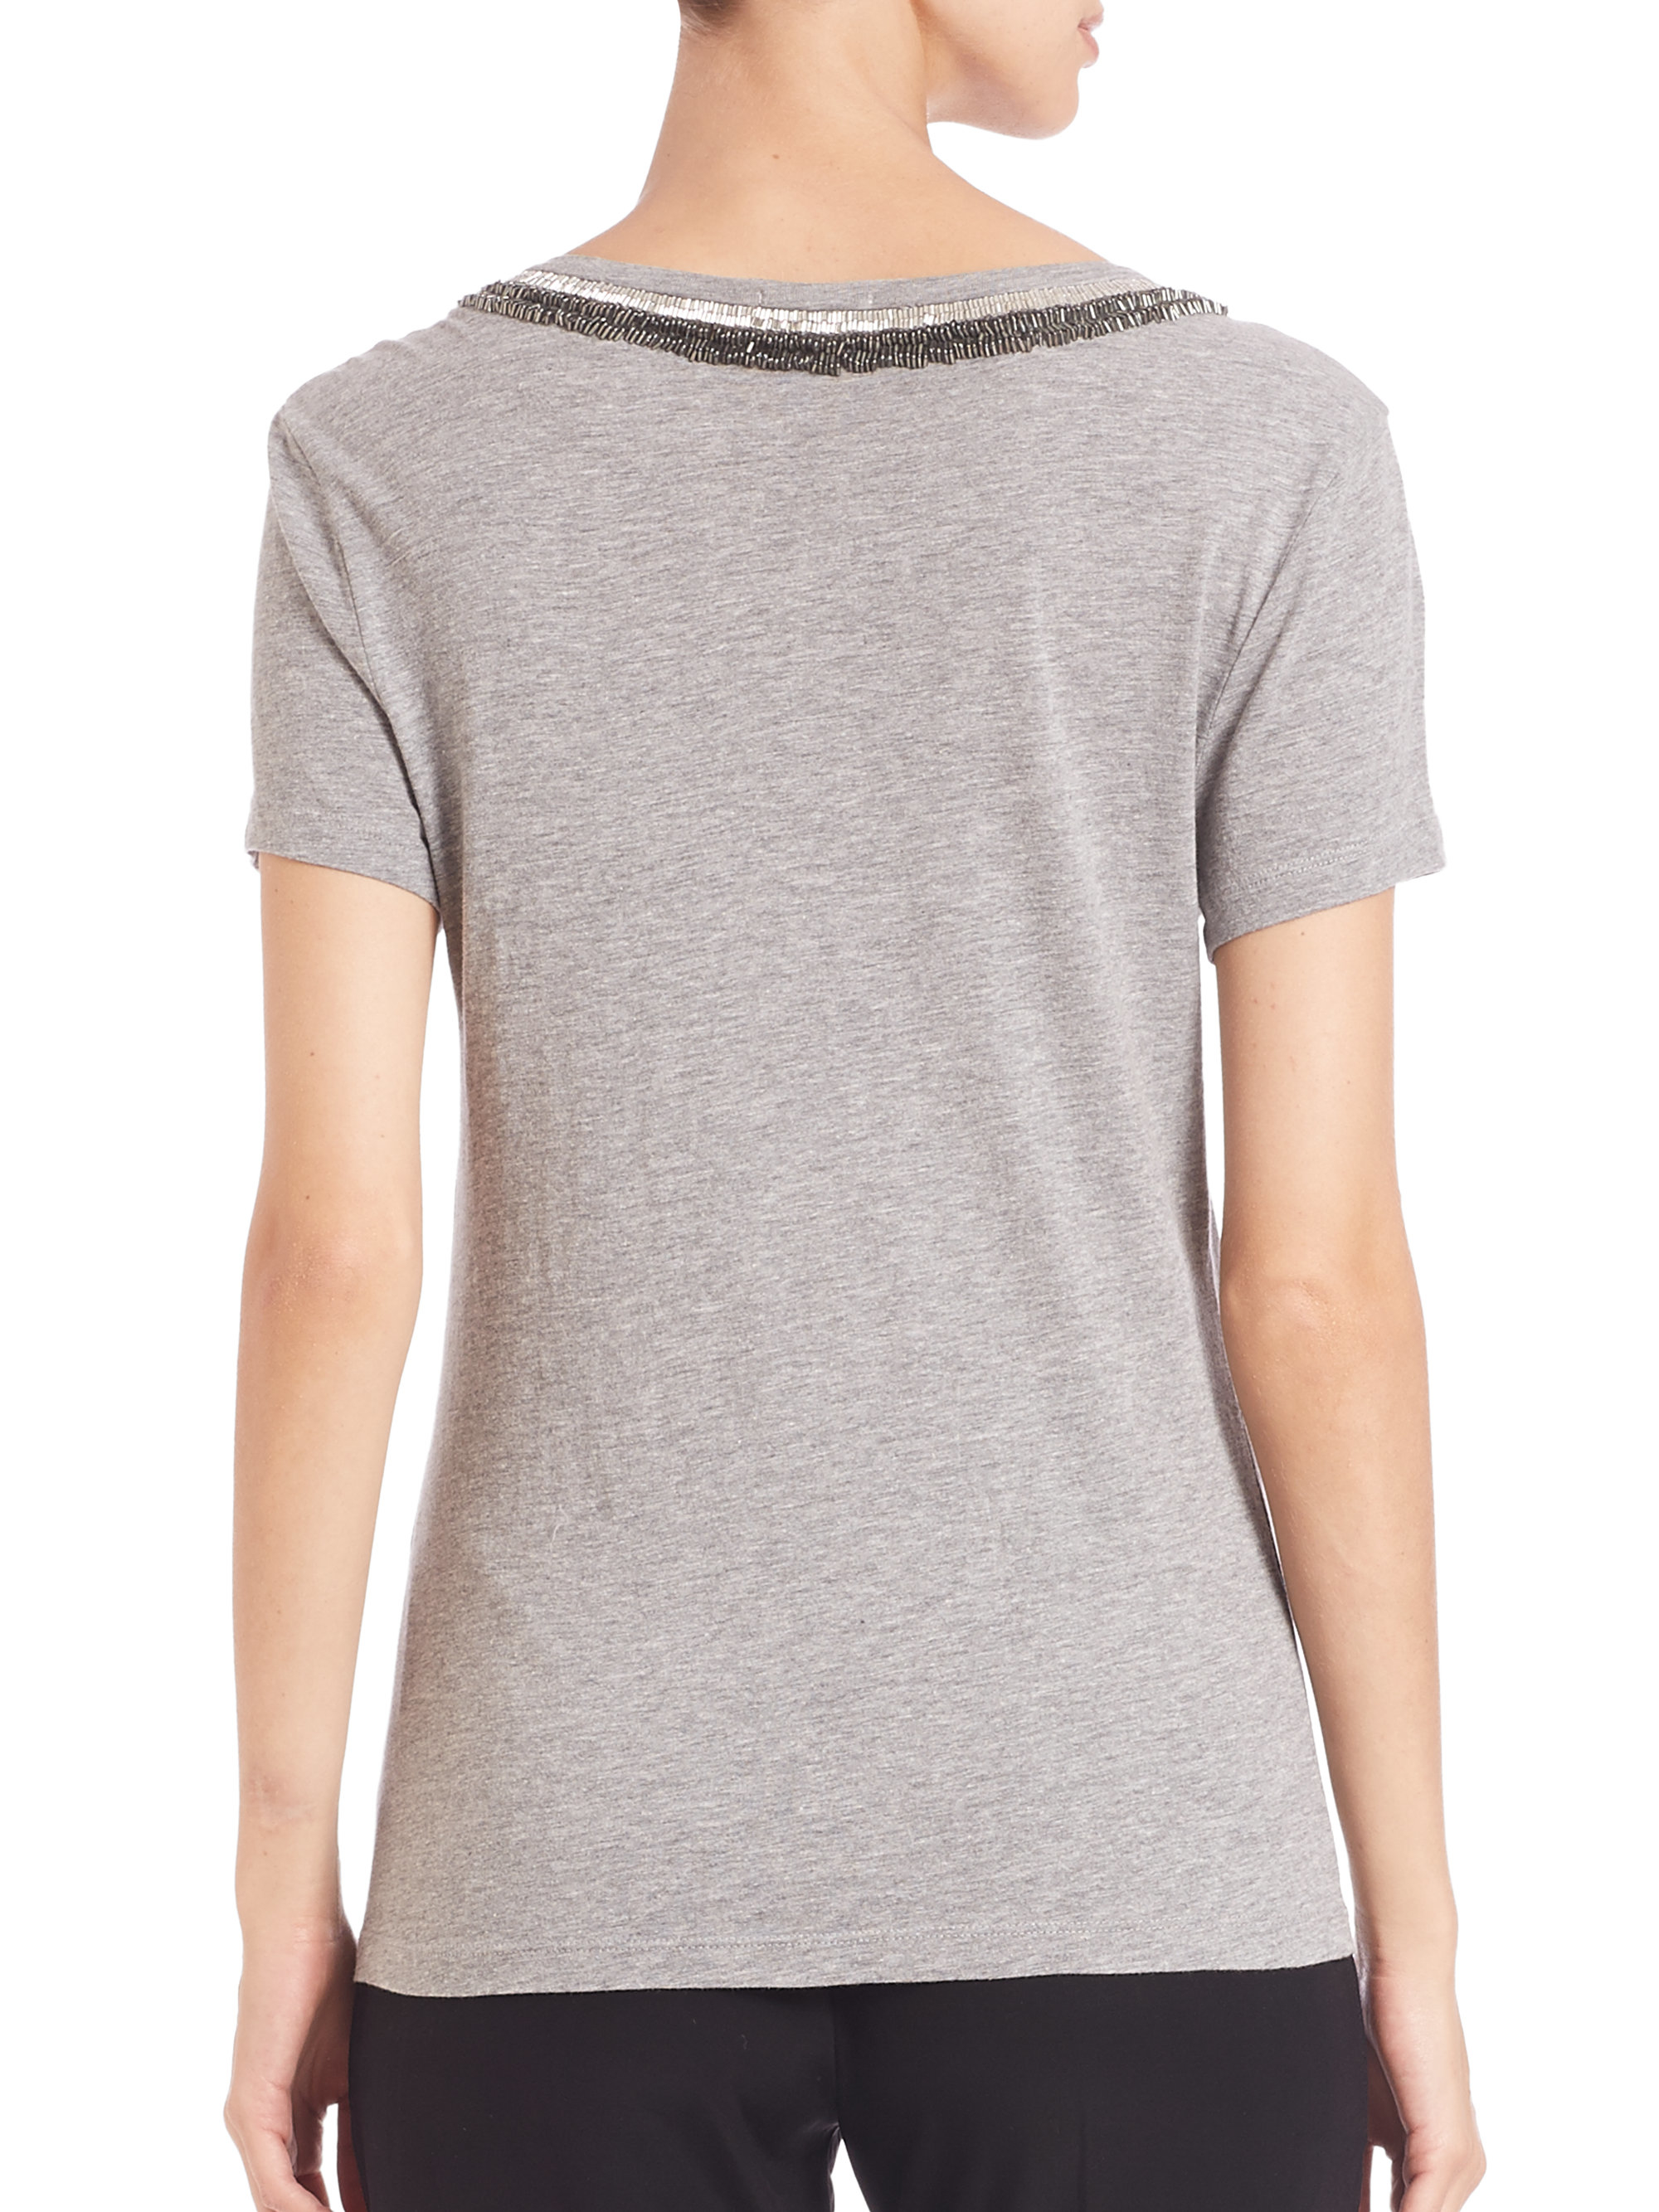 Three dots embellished scoopneck tee in gray lyst for Three dots t shirts